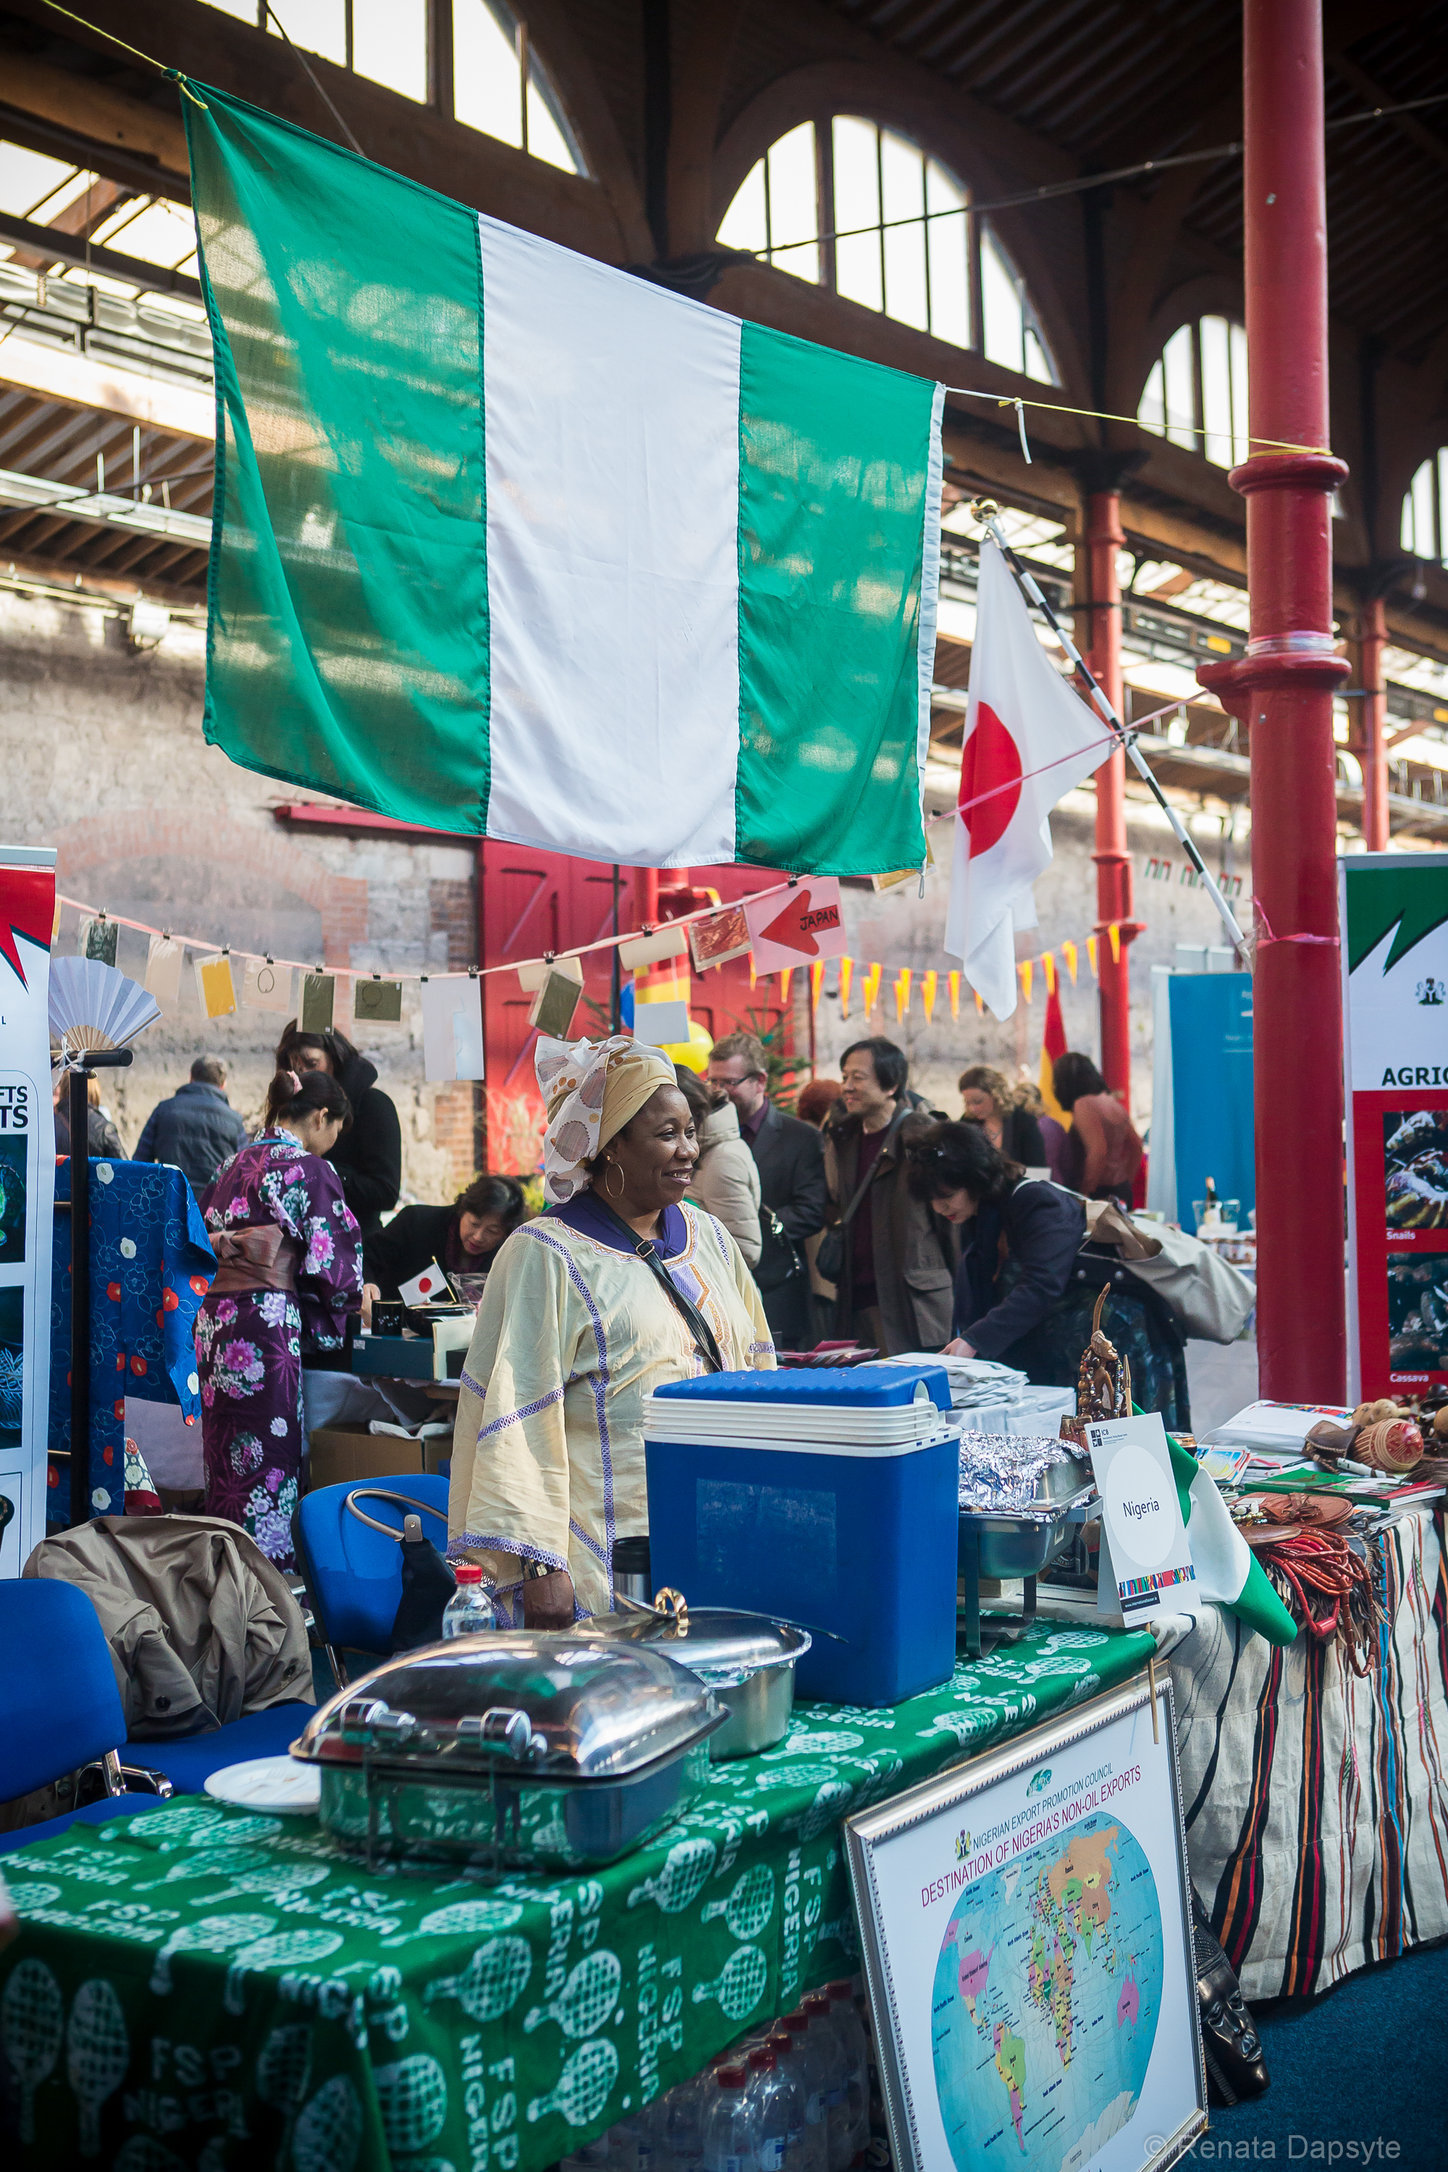 021_International Charity Bazaar Dublin 2013.JPG